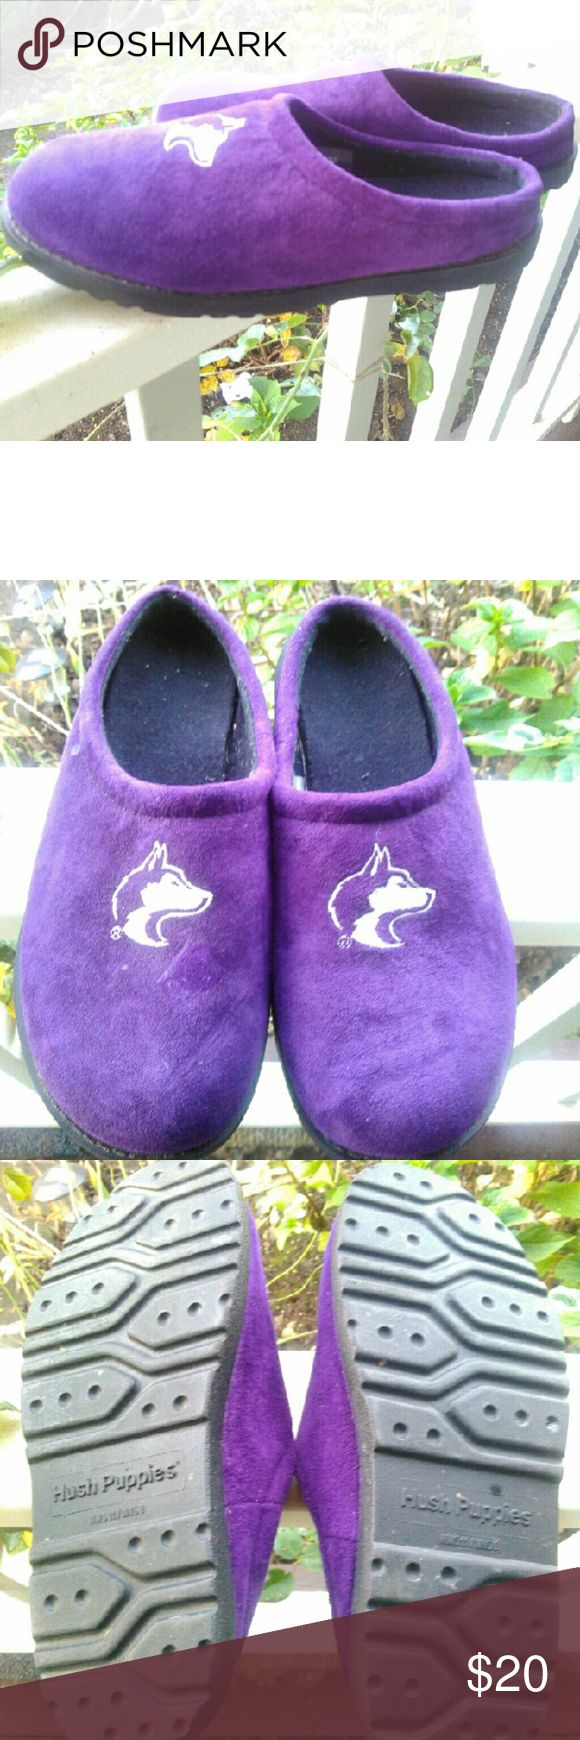 Husky Slippers Comfortable and sporting your favorite college team by Hush Puppies. These have rubber soles so you can wear outside. My husband never wore these so in perfect used condition. Men's size 9.  Any questions just ask. Hush Puppies Shoes Loafers & Slip-Ons